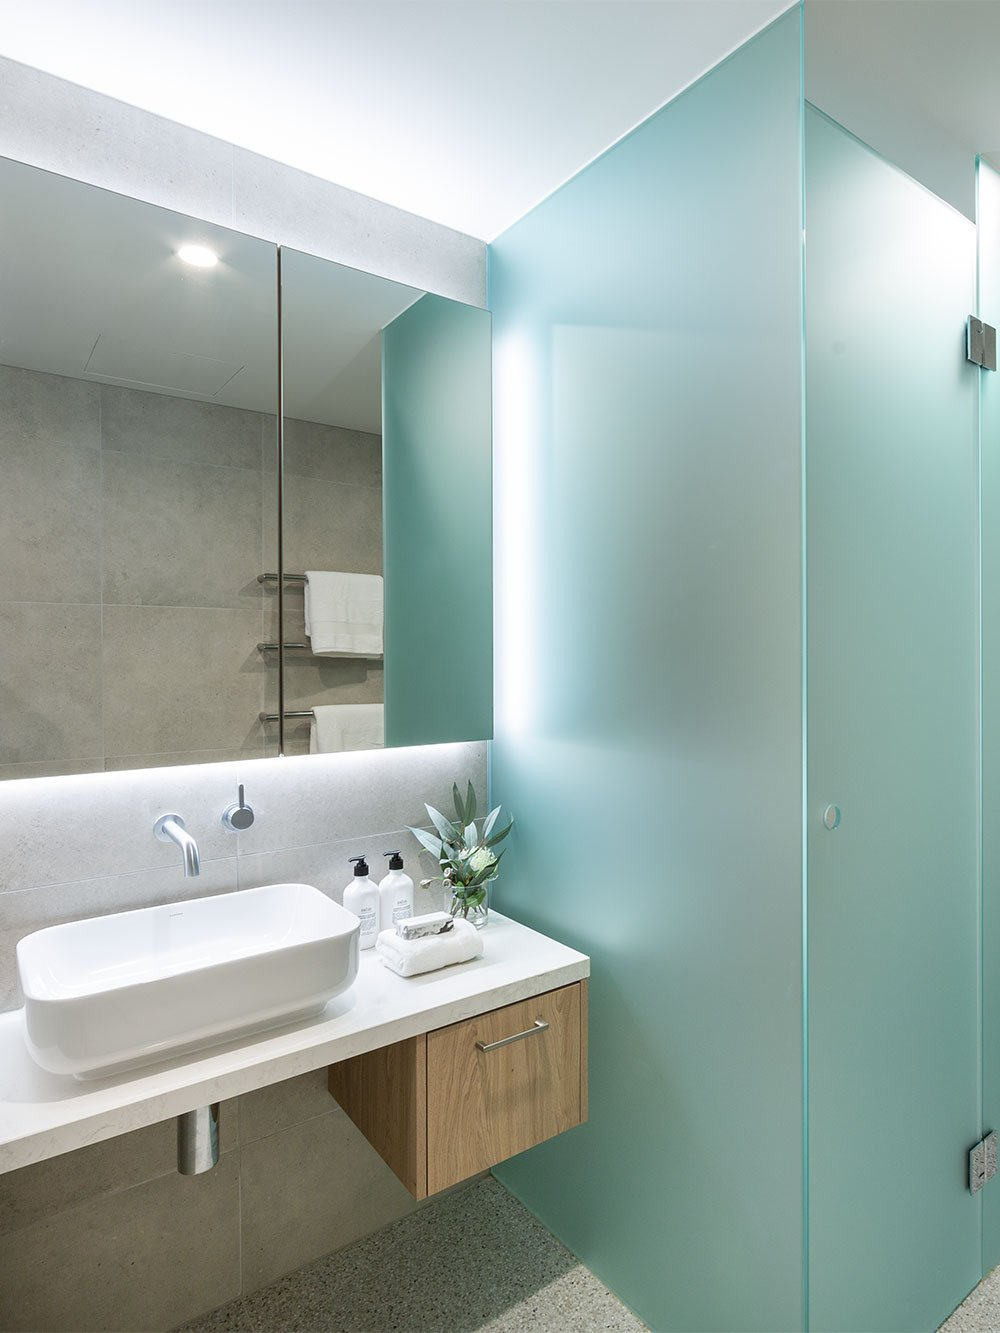 Retirement apartment bathroom at Baptcare The Orchards Templestowe